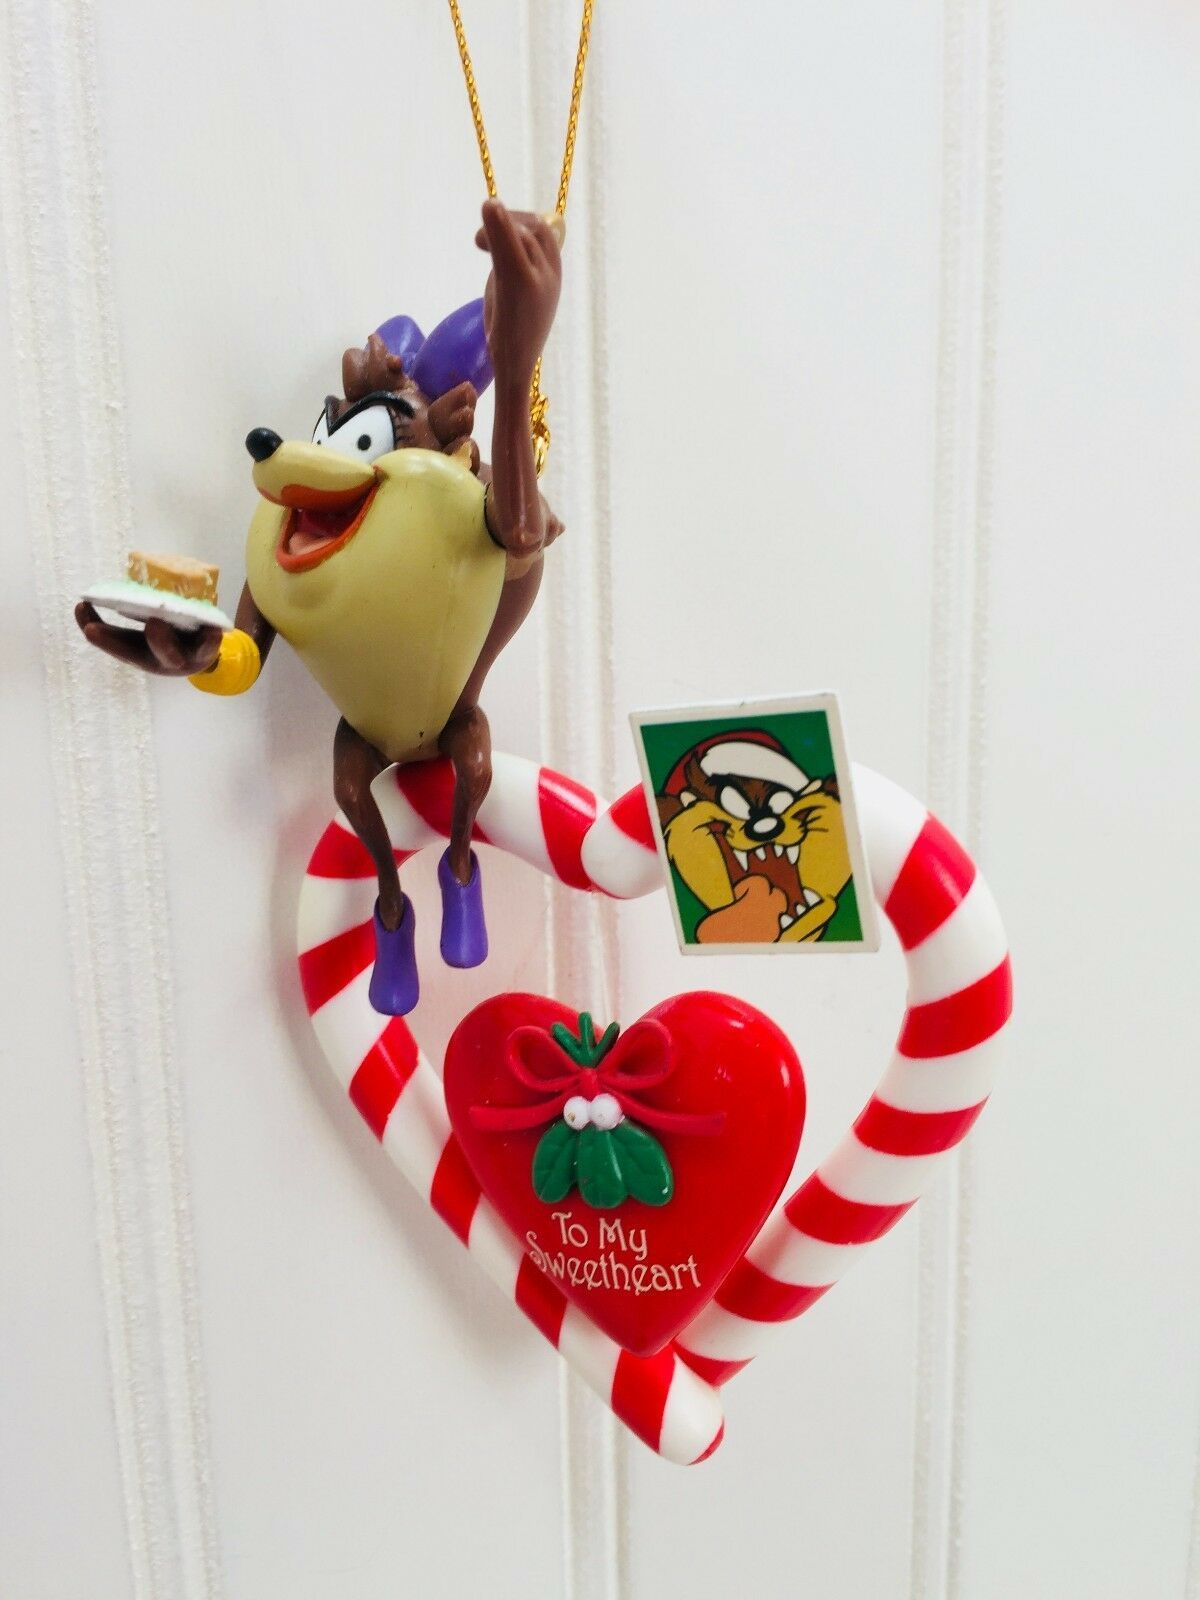 MATRIX LOONEY TUNES Taz Sweetheart ORNAMENT Christmas 22793